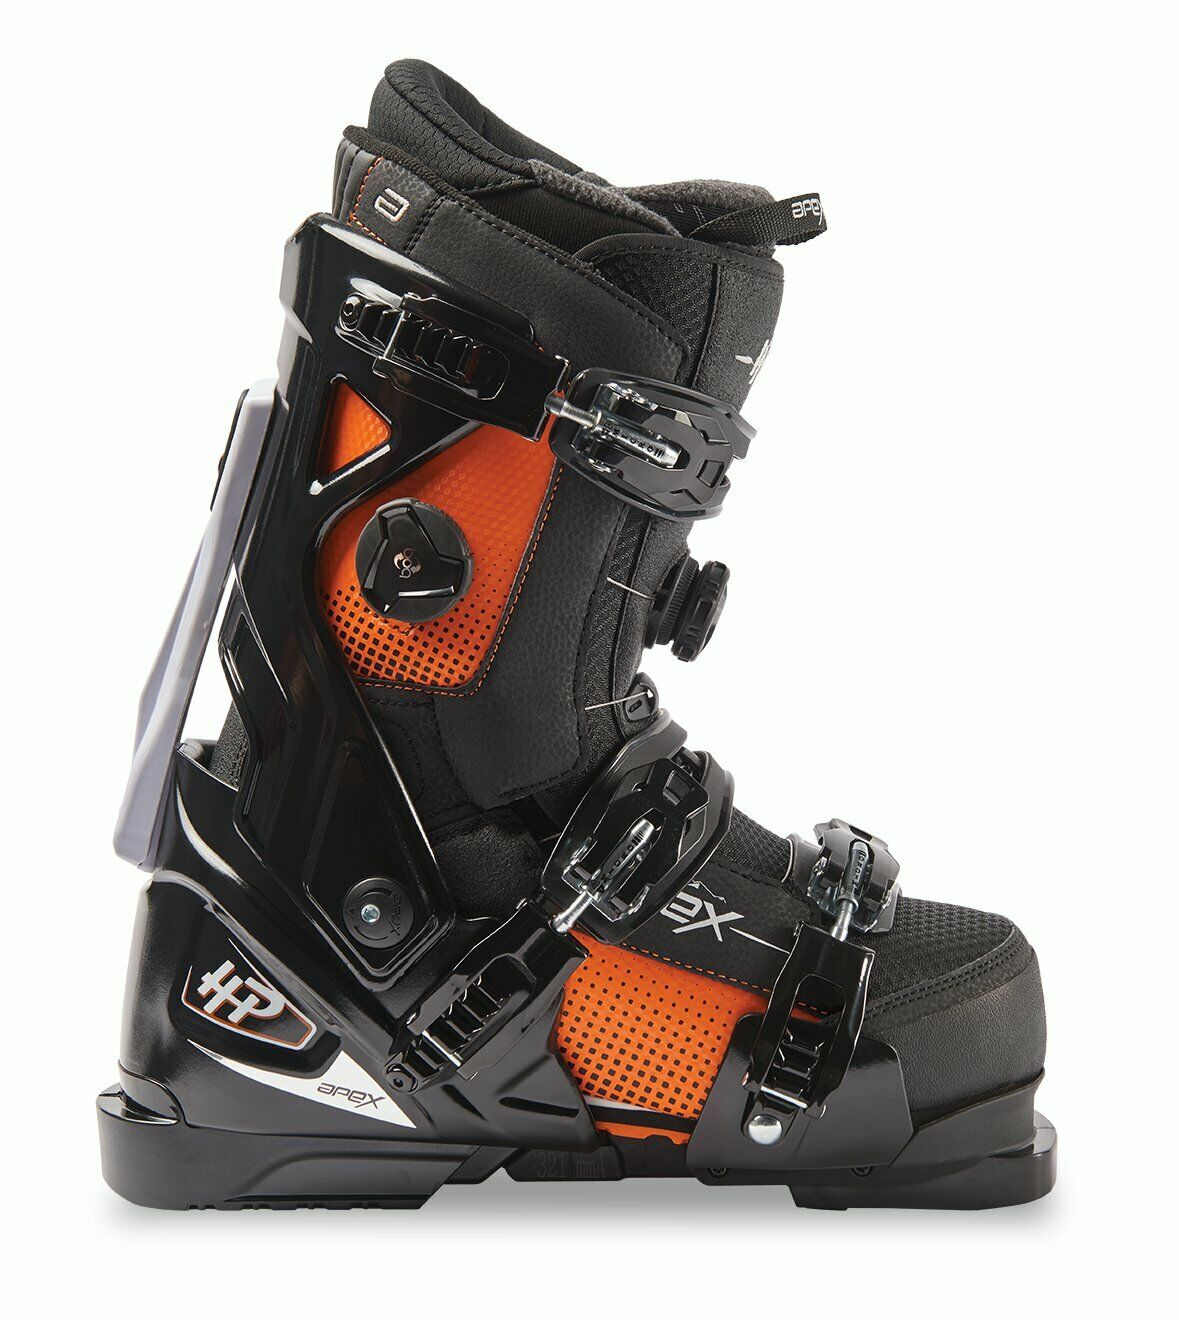 Apex HP All-Mountain Ski Boots - Worlds  Most Comfortable Ski Boots  are doing discount activities